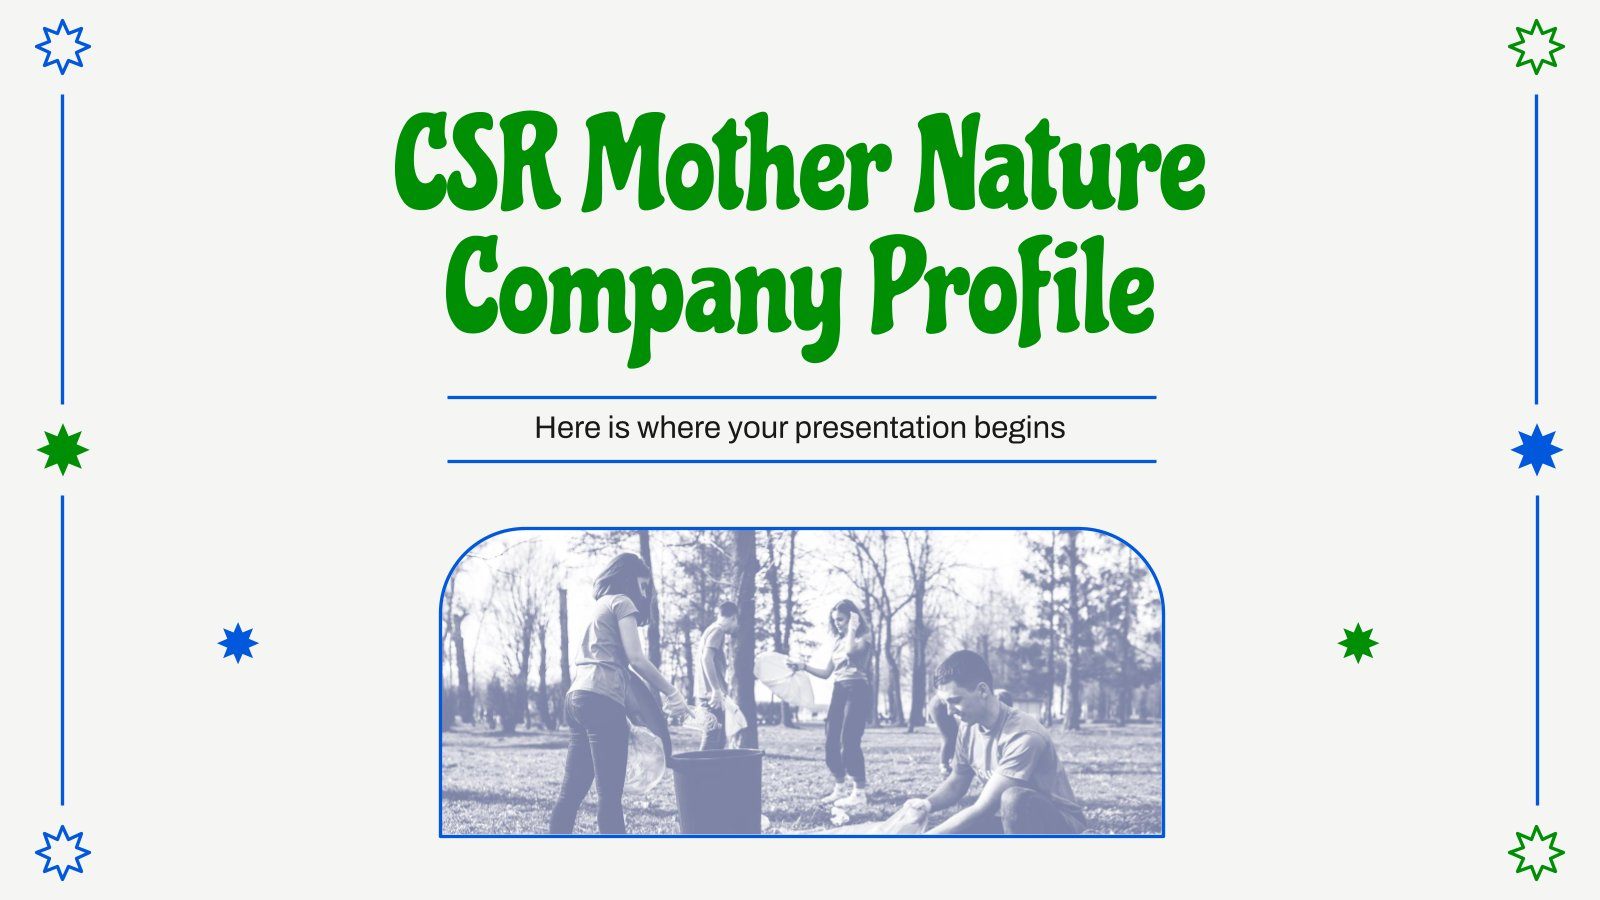 CSR Mother Nature Company Profile presentation template